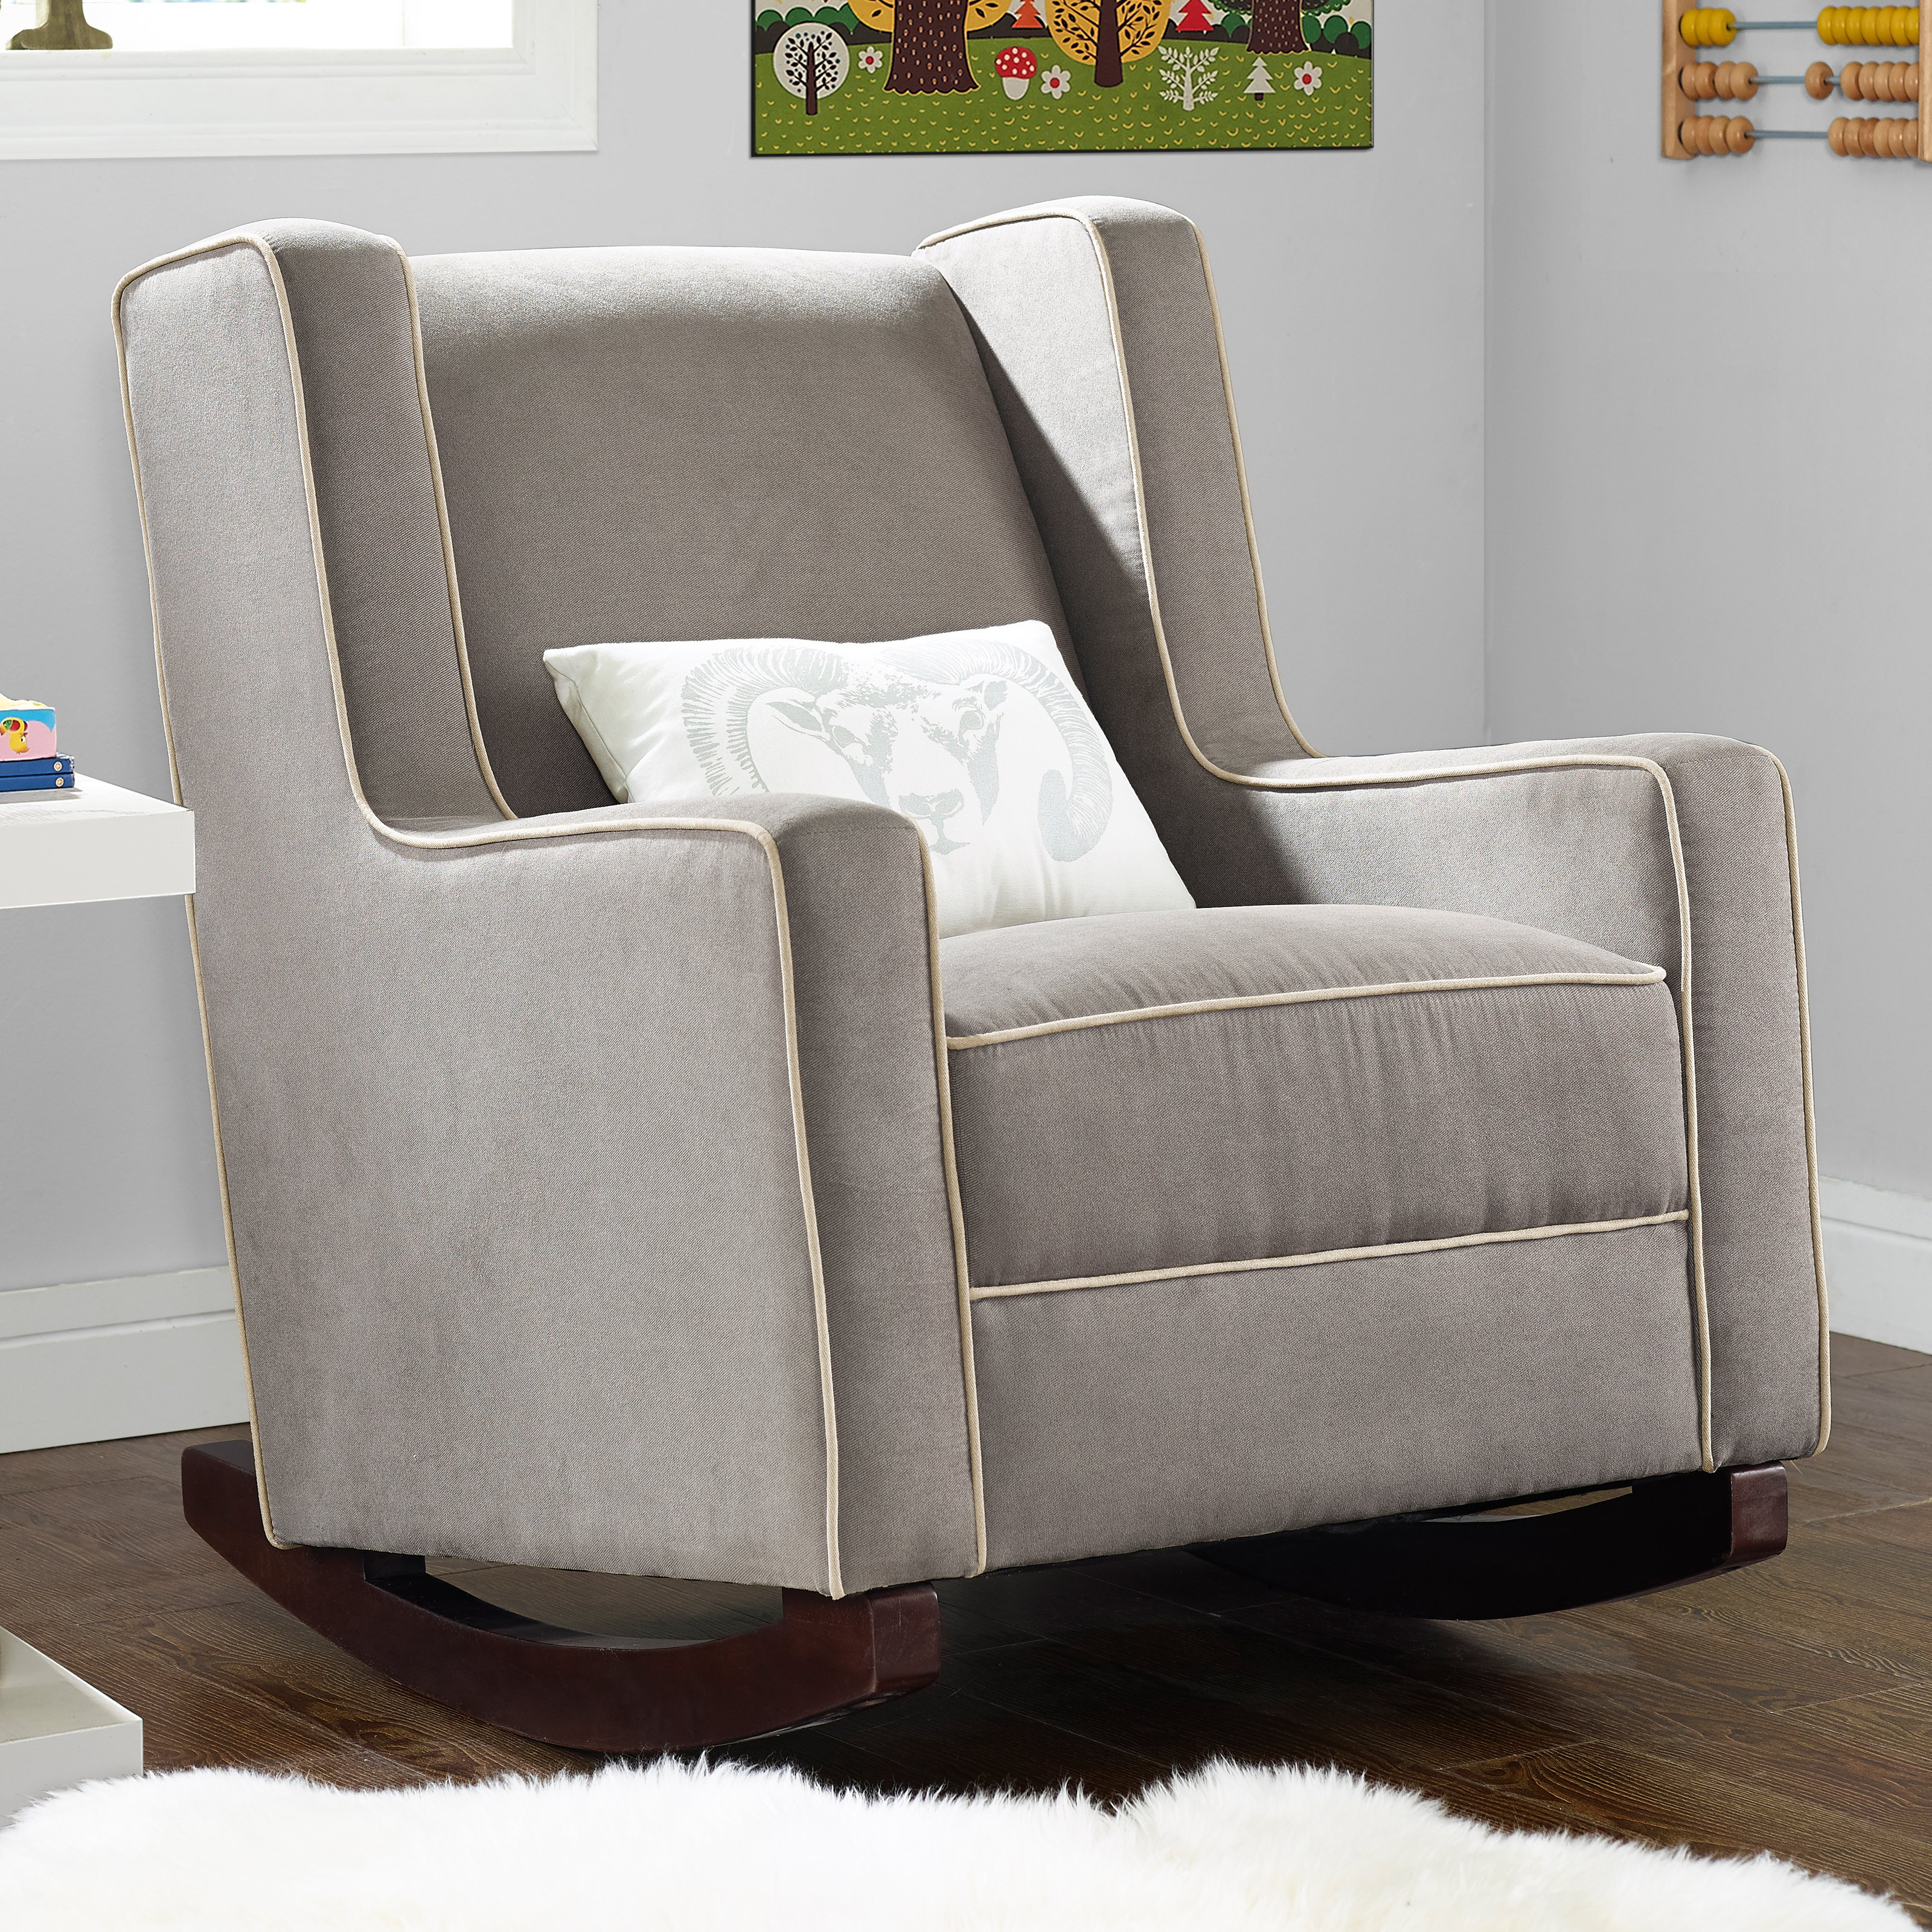 Recliner : Baby Relax Abby Rocker Luxury Glider And Recliner For Within Recent Abbey Swivel Glider Recliners (Gallery 7 of 20)